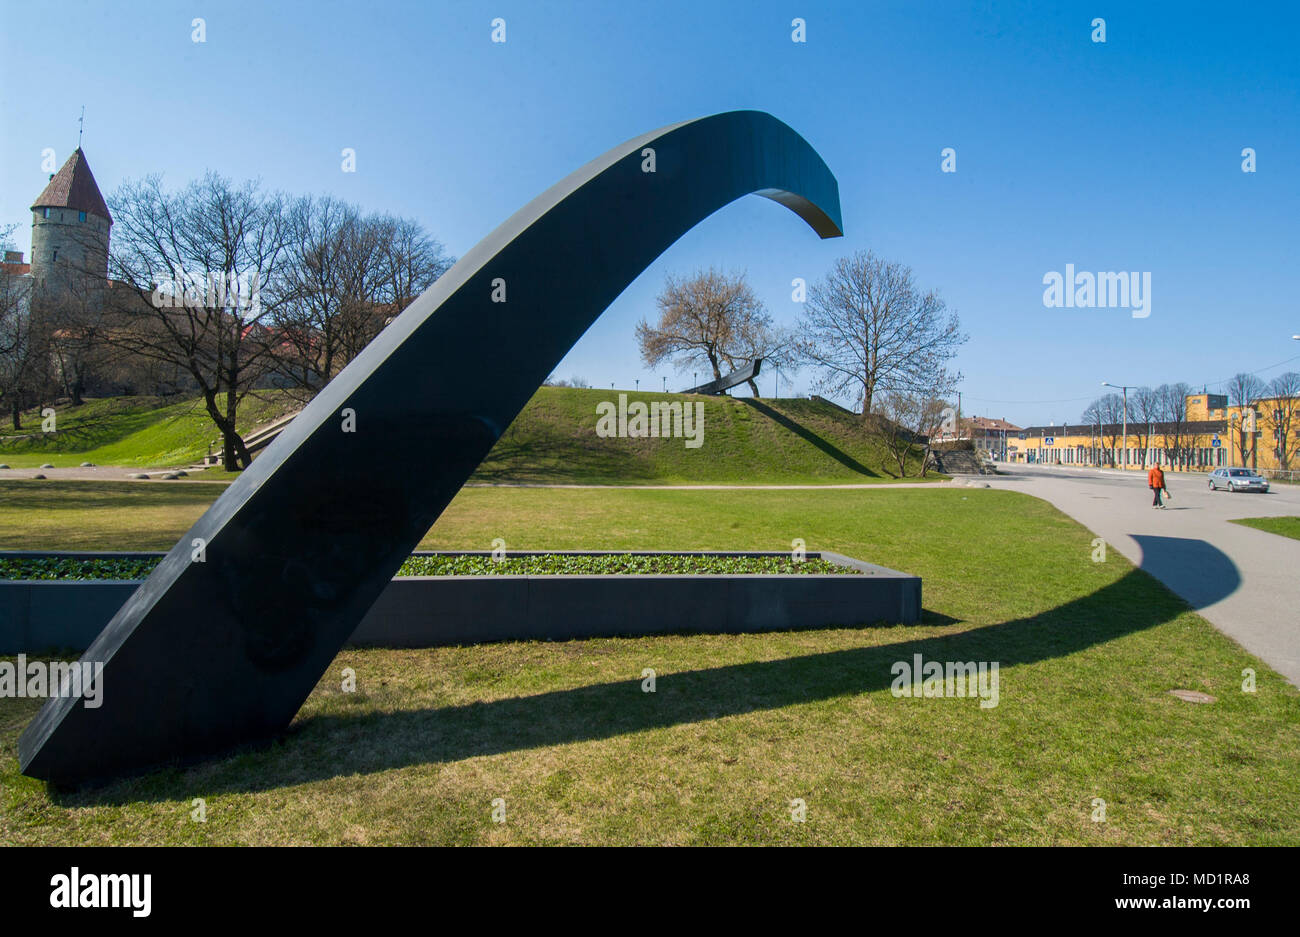 Estonia monument in Tallinn over the list of the Estonian ship that sink 1994, 28 September. - Stock Image